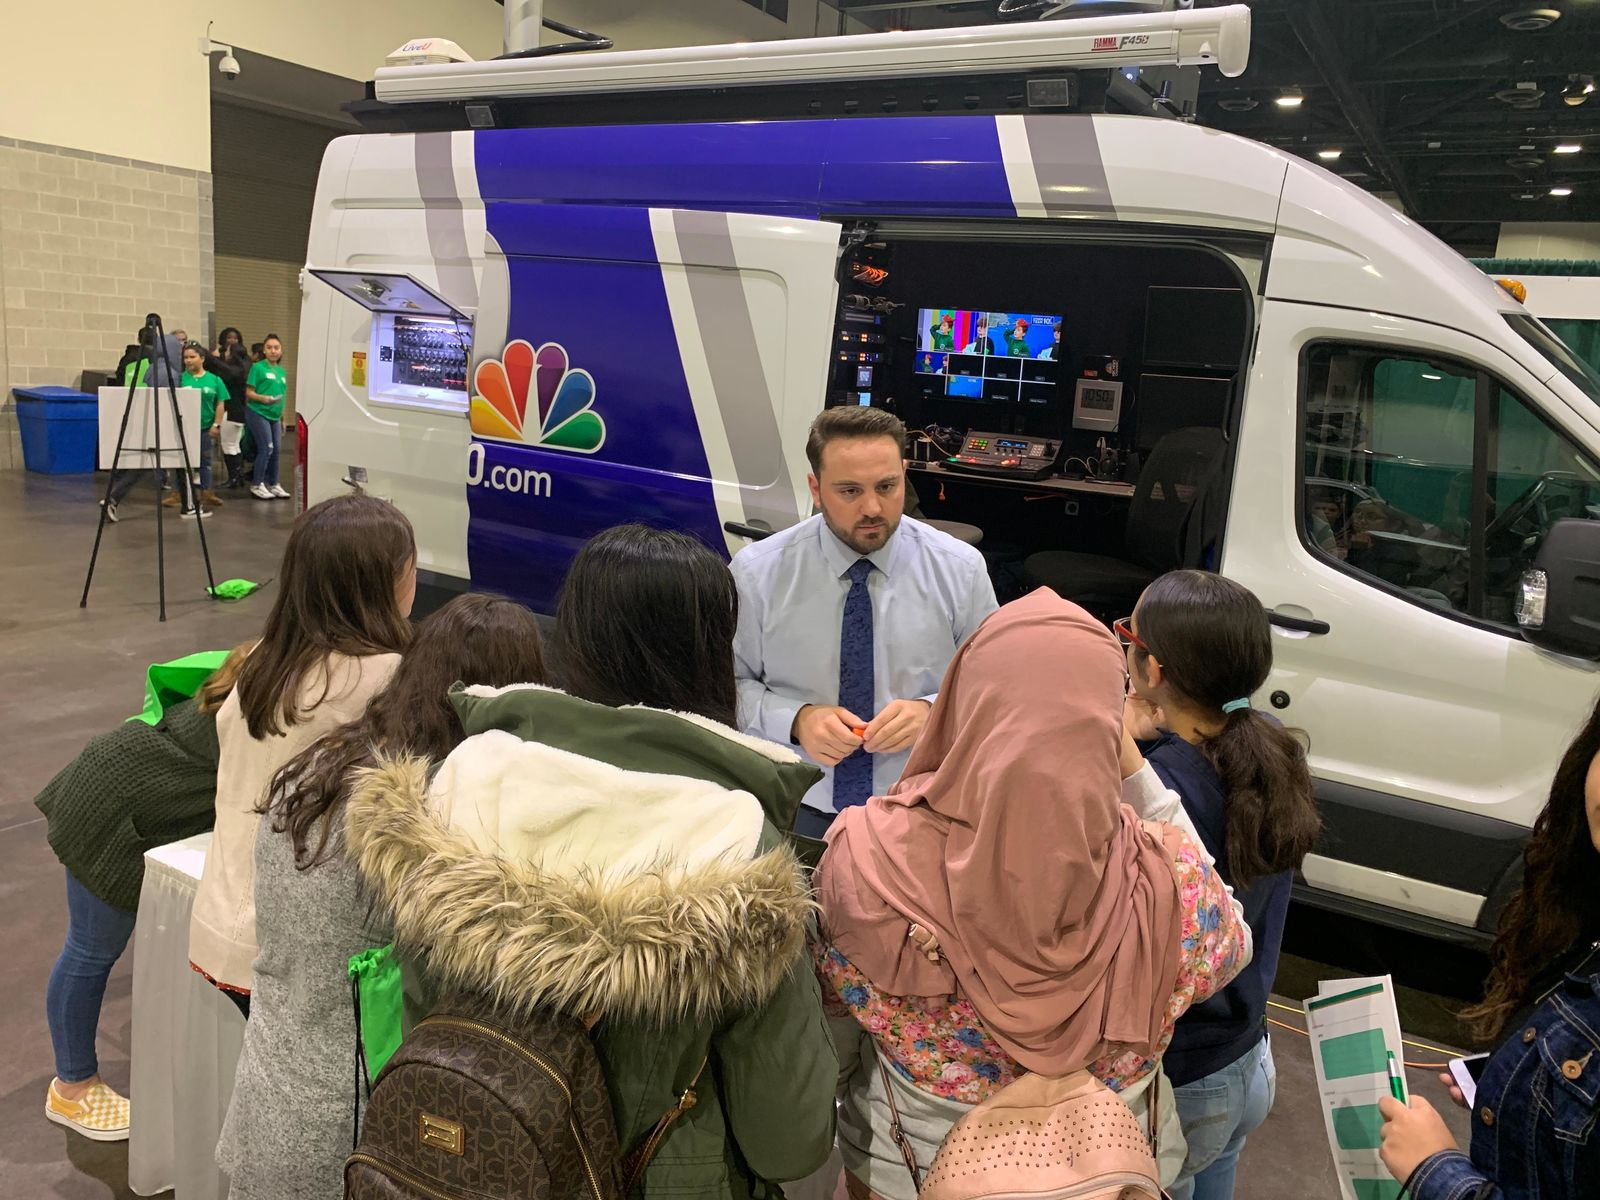 Jon Shideler, who works in the promotions department at NBC 10, chats with students. (WJAR)